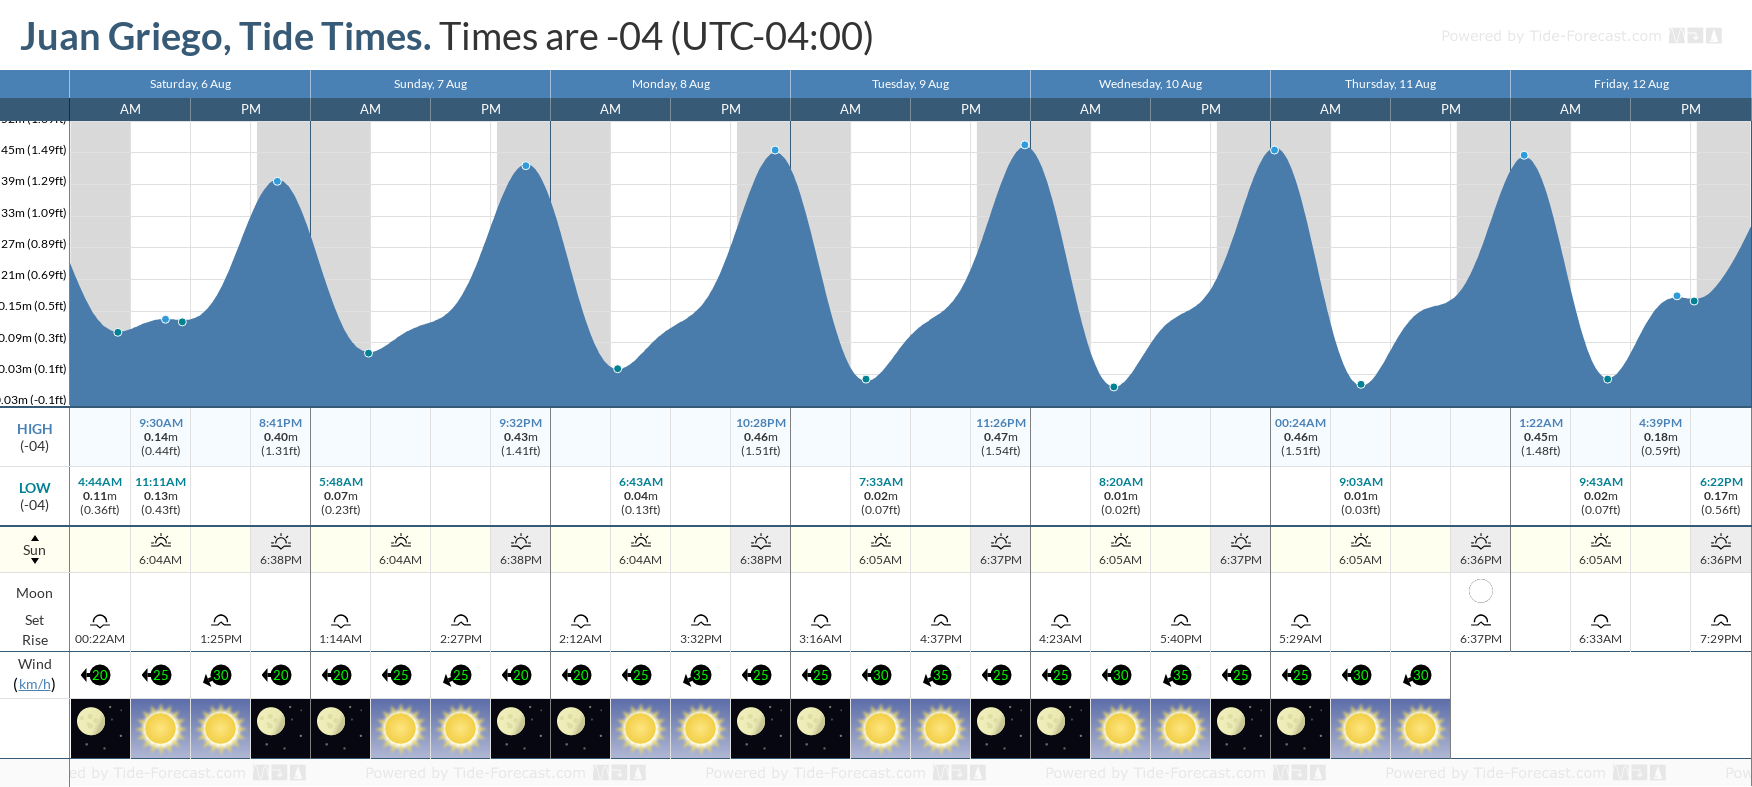 Juan Griego Tide Chart including high and low tide tide times for the next 7 days